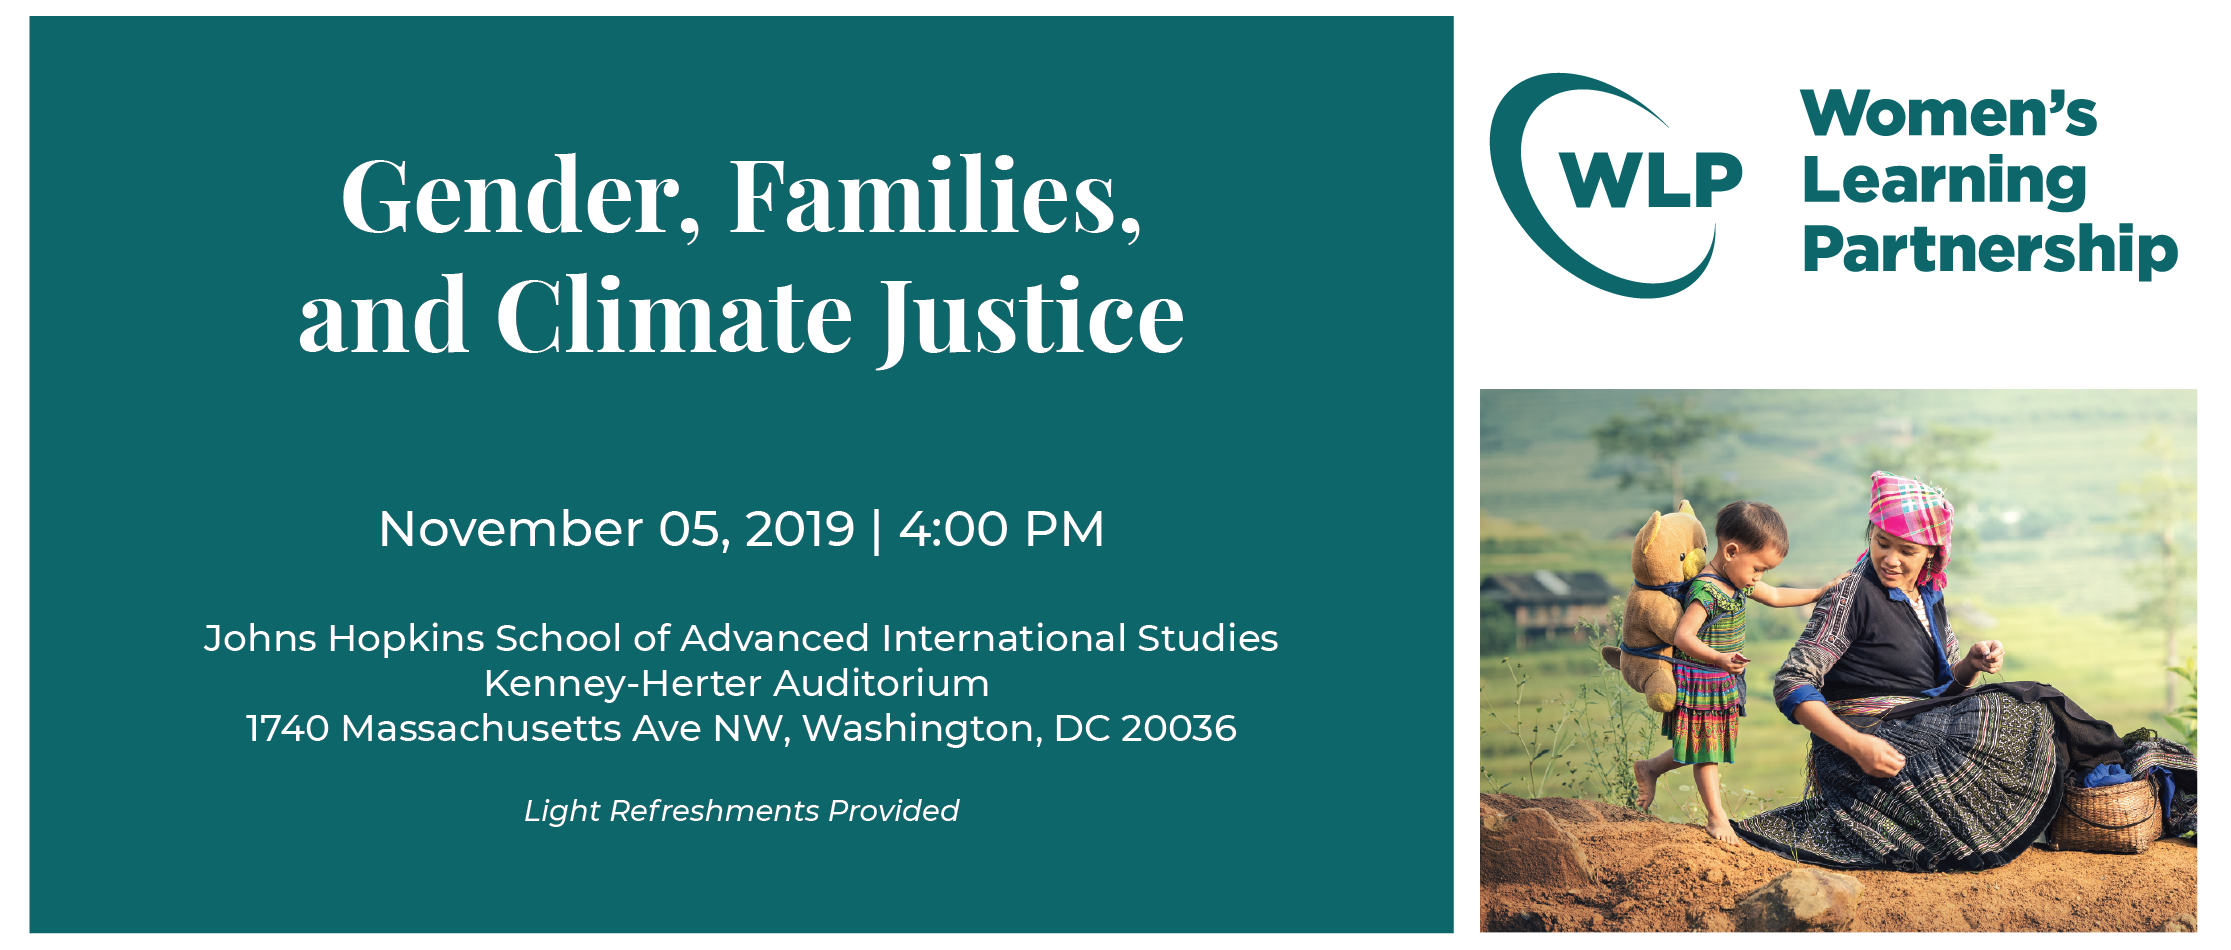 Gender, Families, Climate Justice- PROMO